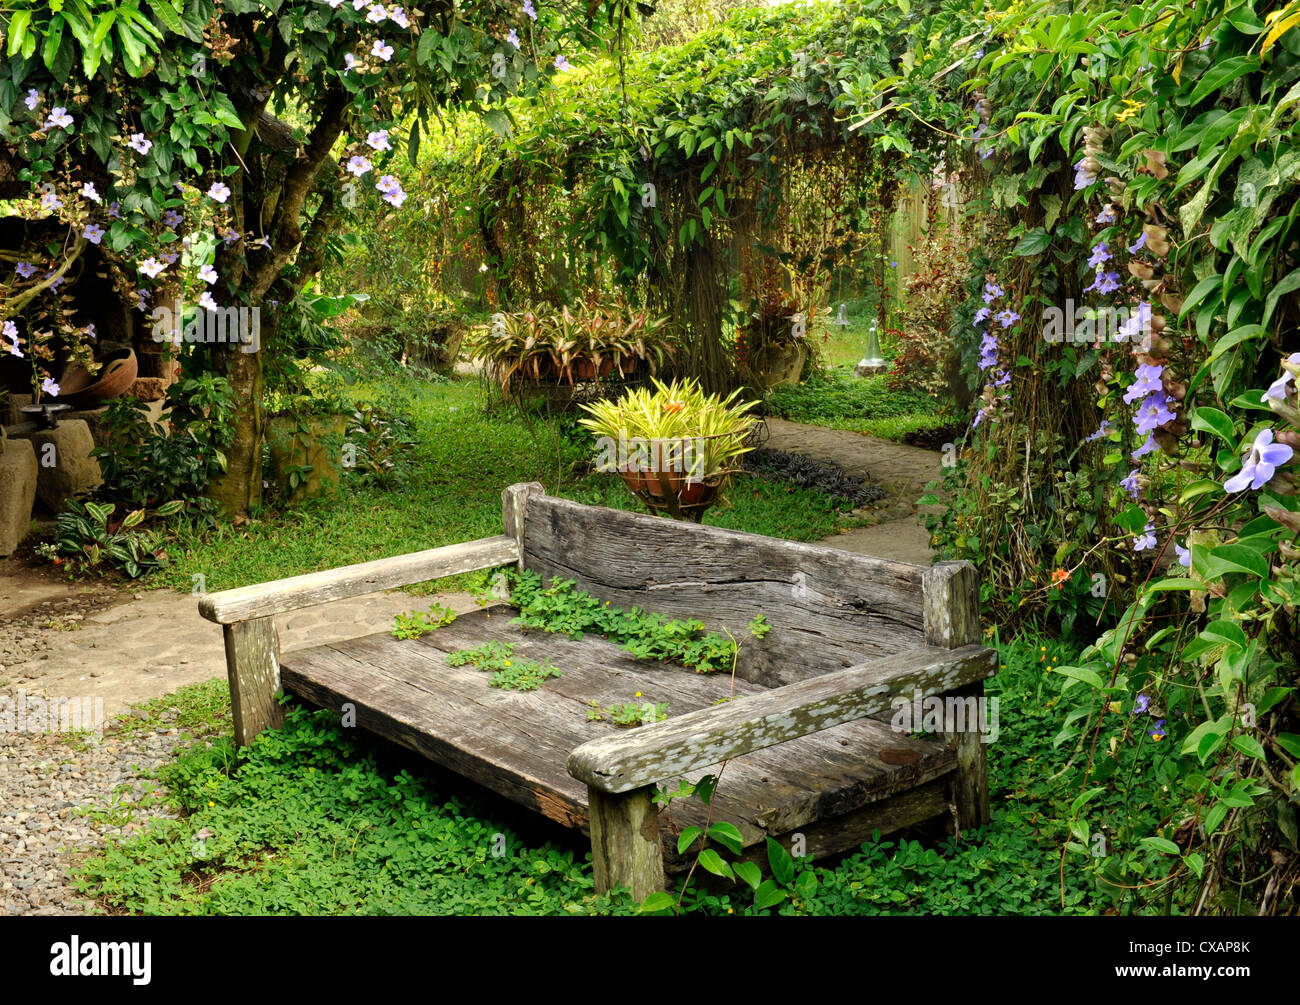 The Moon Garden features a series of trellises with Thunbergias and other vines, designed by P. Geertz in Tagaytay, - Stock Image